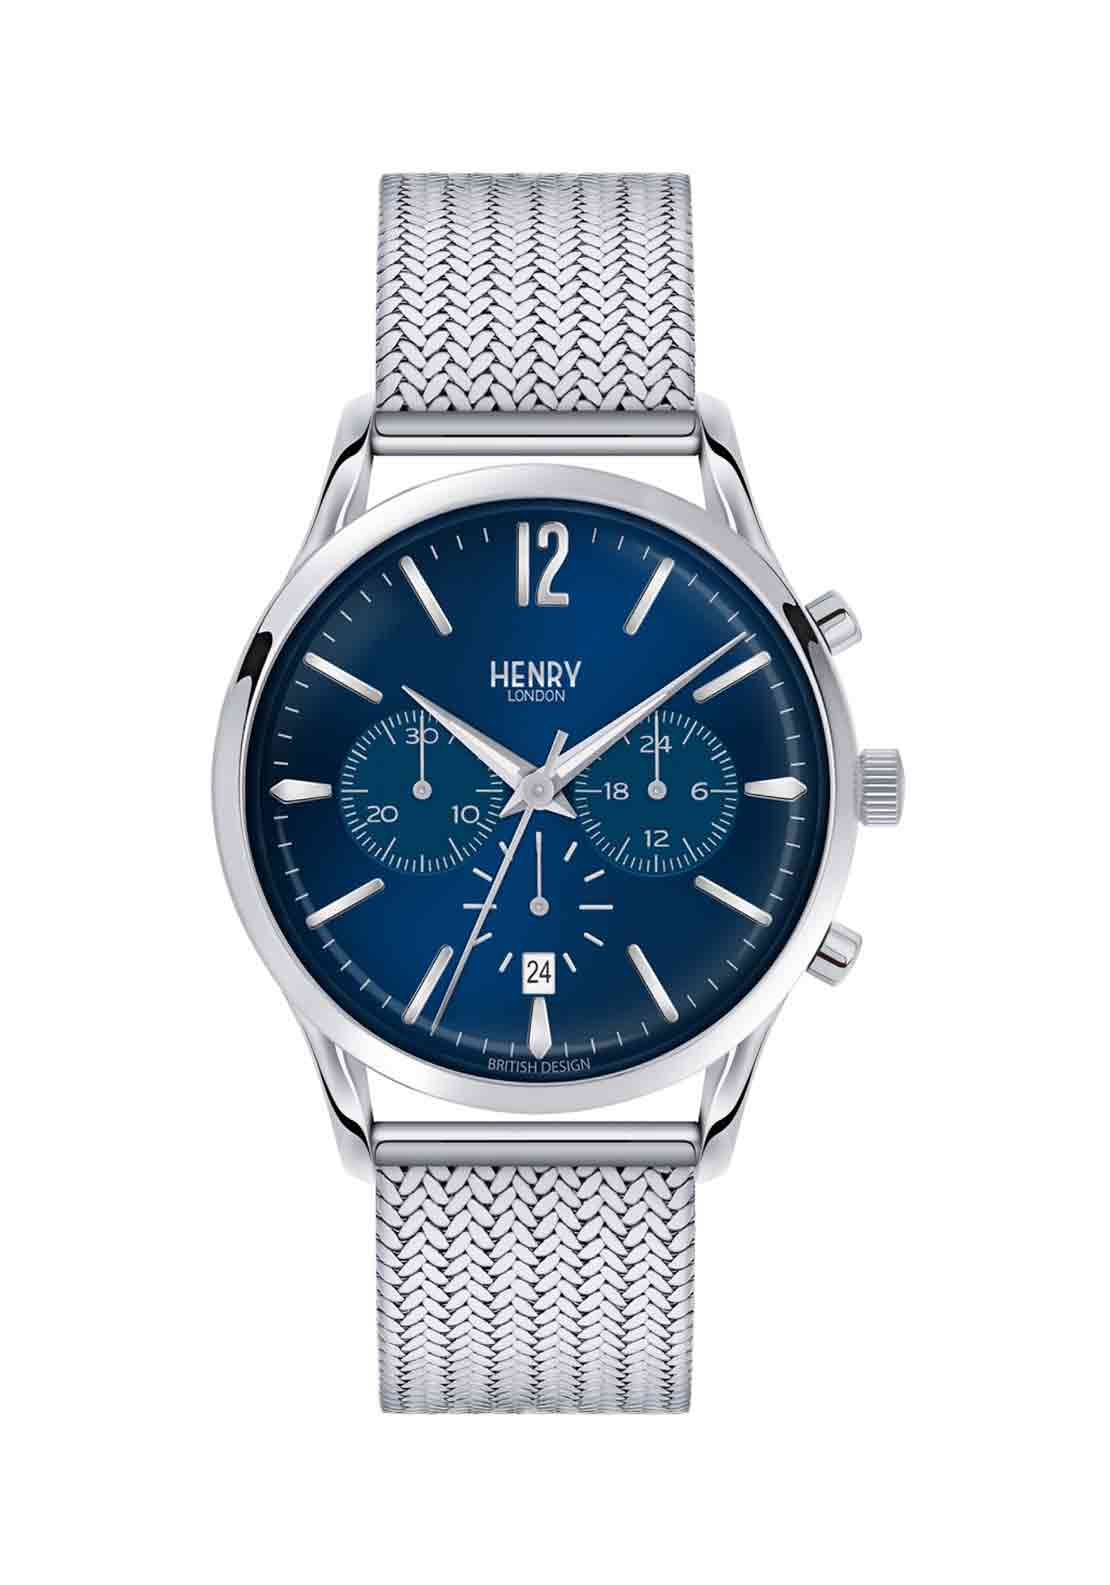 Henry London Unisex Knightsbridge Watch, Silver